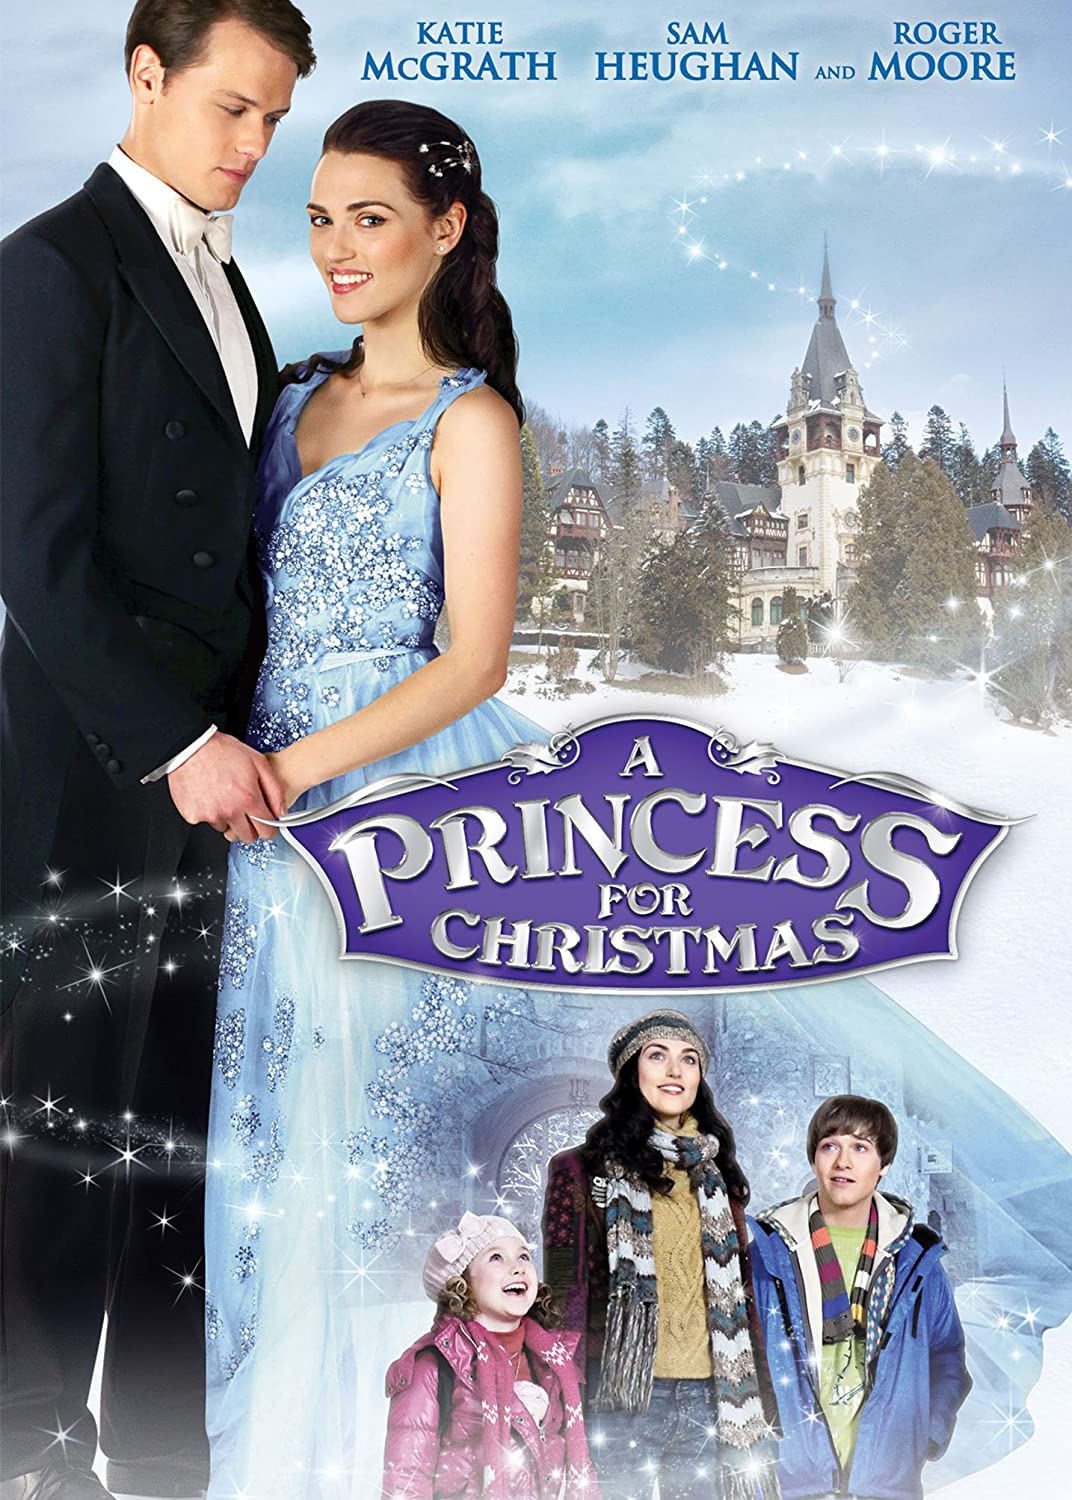 amazoncom a princess for christmas katie mcgrath roger moore sam heughan travis turner charlotte salt movies tv - Amazon Christmas Movies